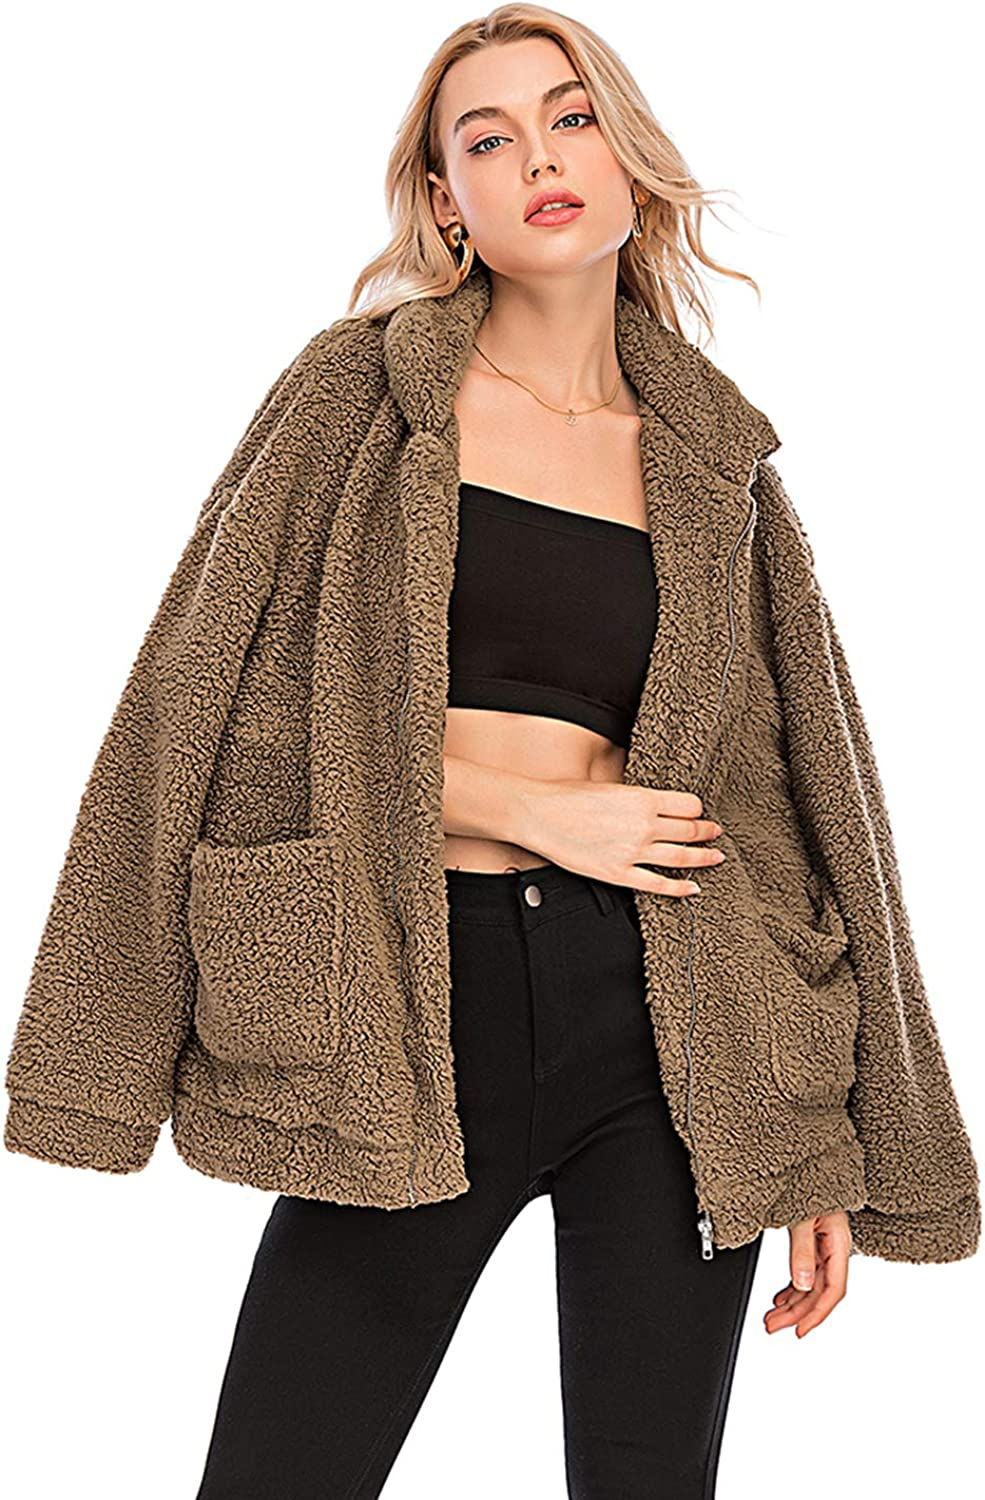 Womens Faux Shearling Jacket, Casual Lapel Fleece Fuzzy Jacket Shaggy Oversized Jacket Fashion Cardigan Coat